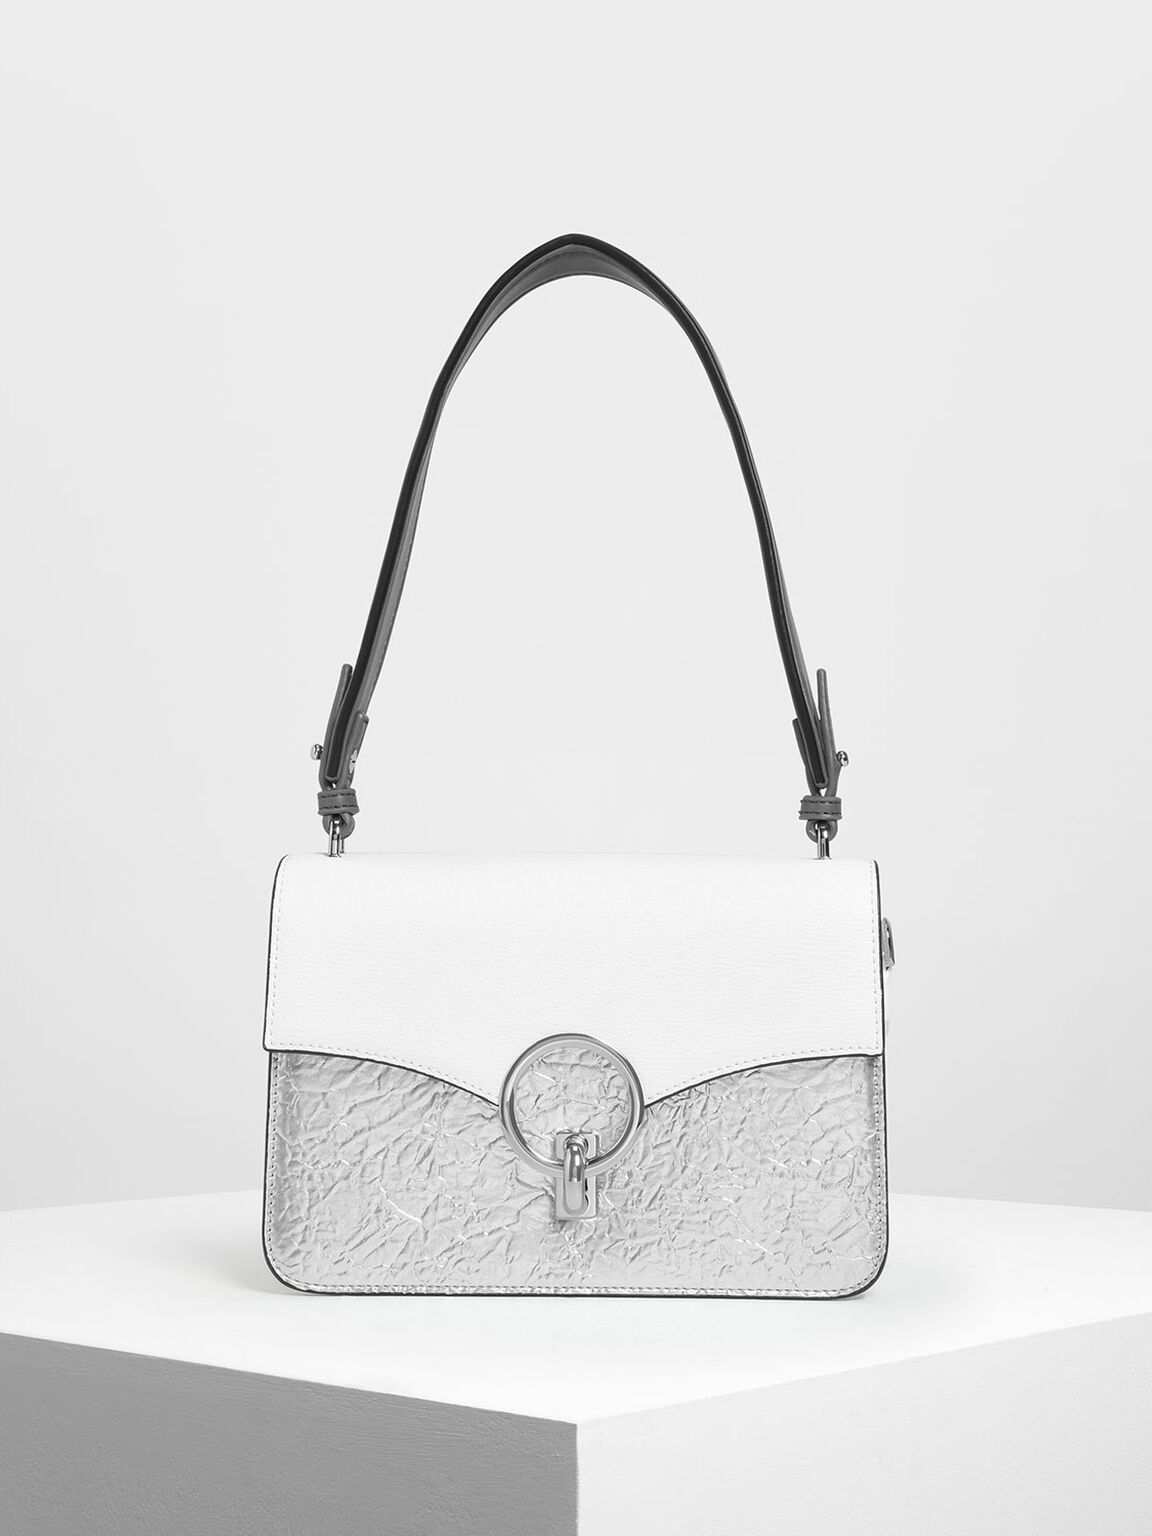 Chain Link Shoulder Bag, Silver, hi-res